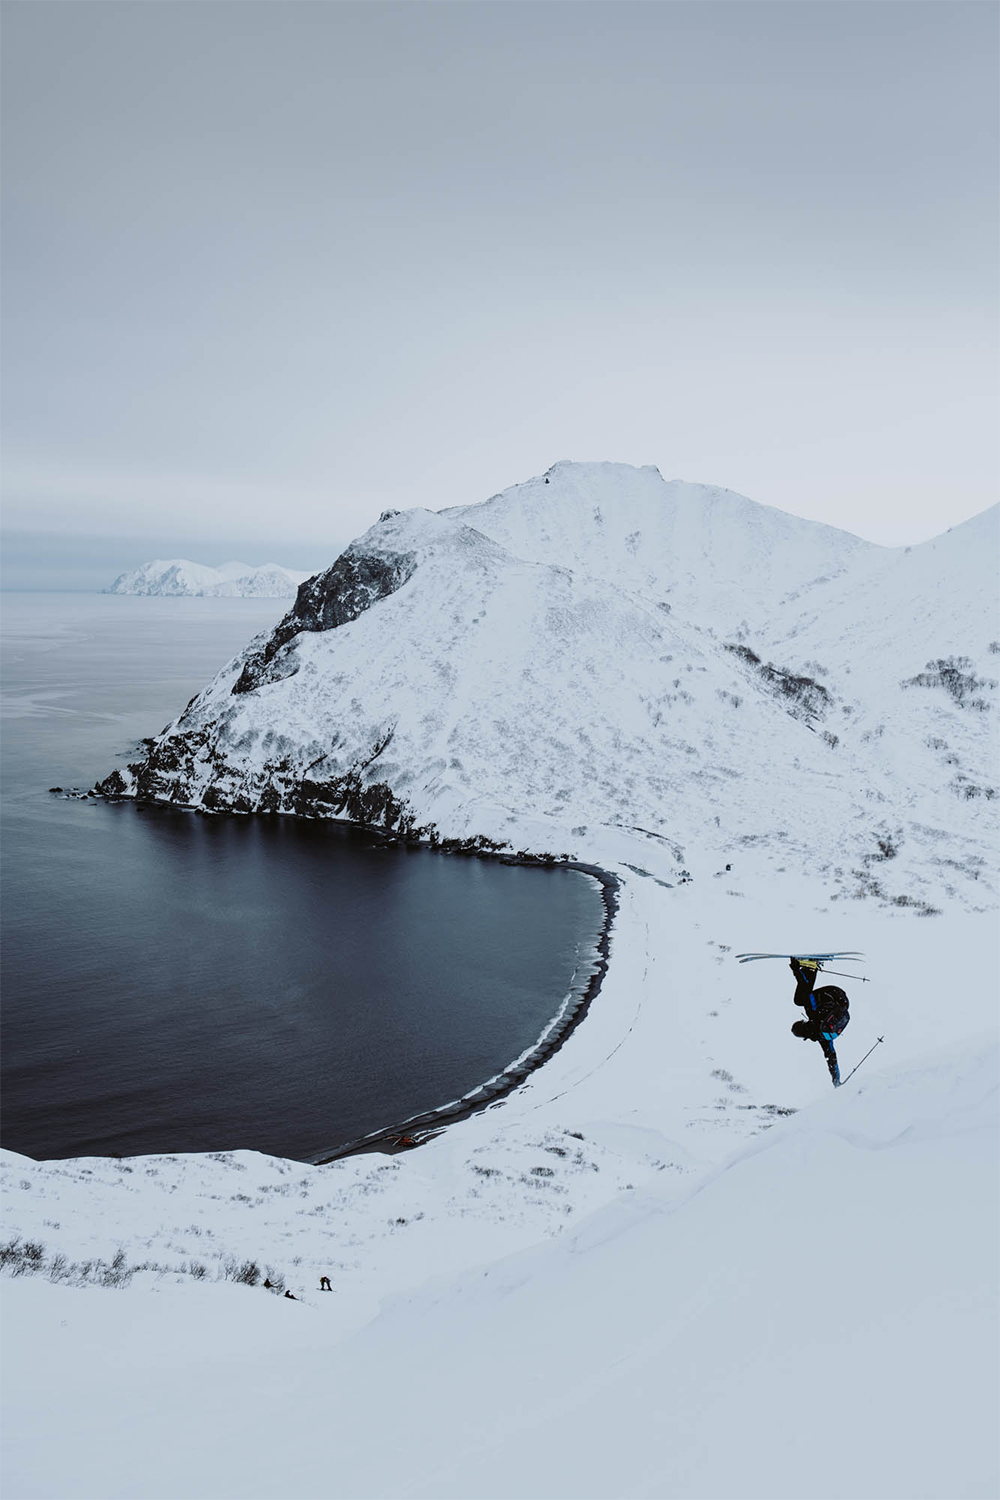 Hand plants across the North Pacific. Skier: William Larsson